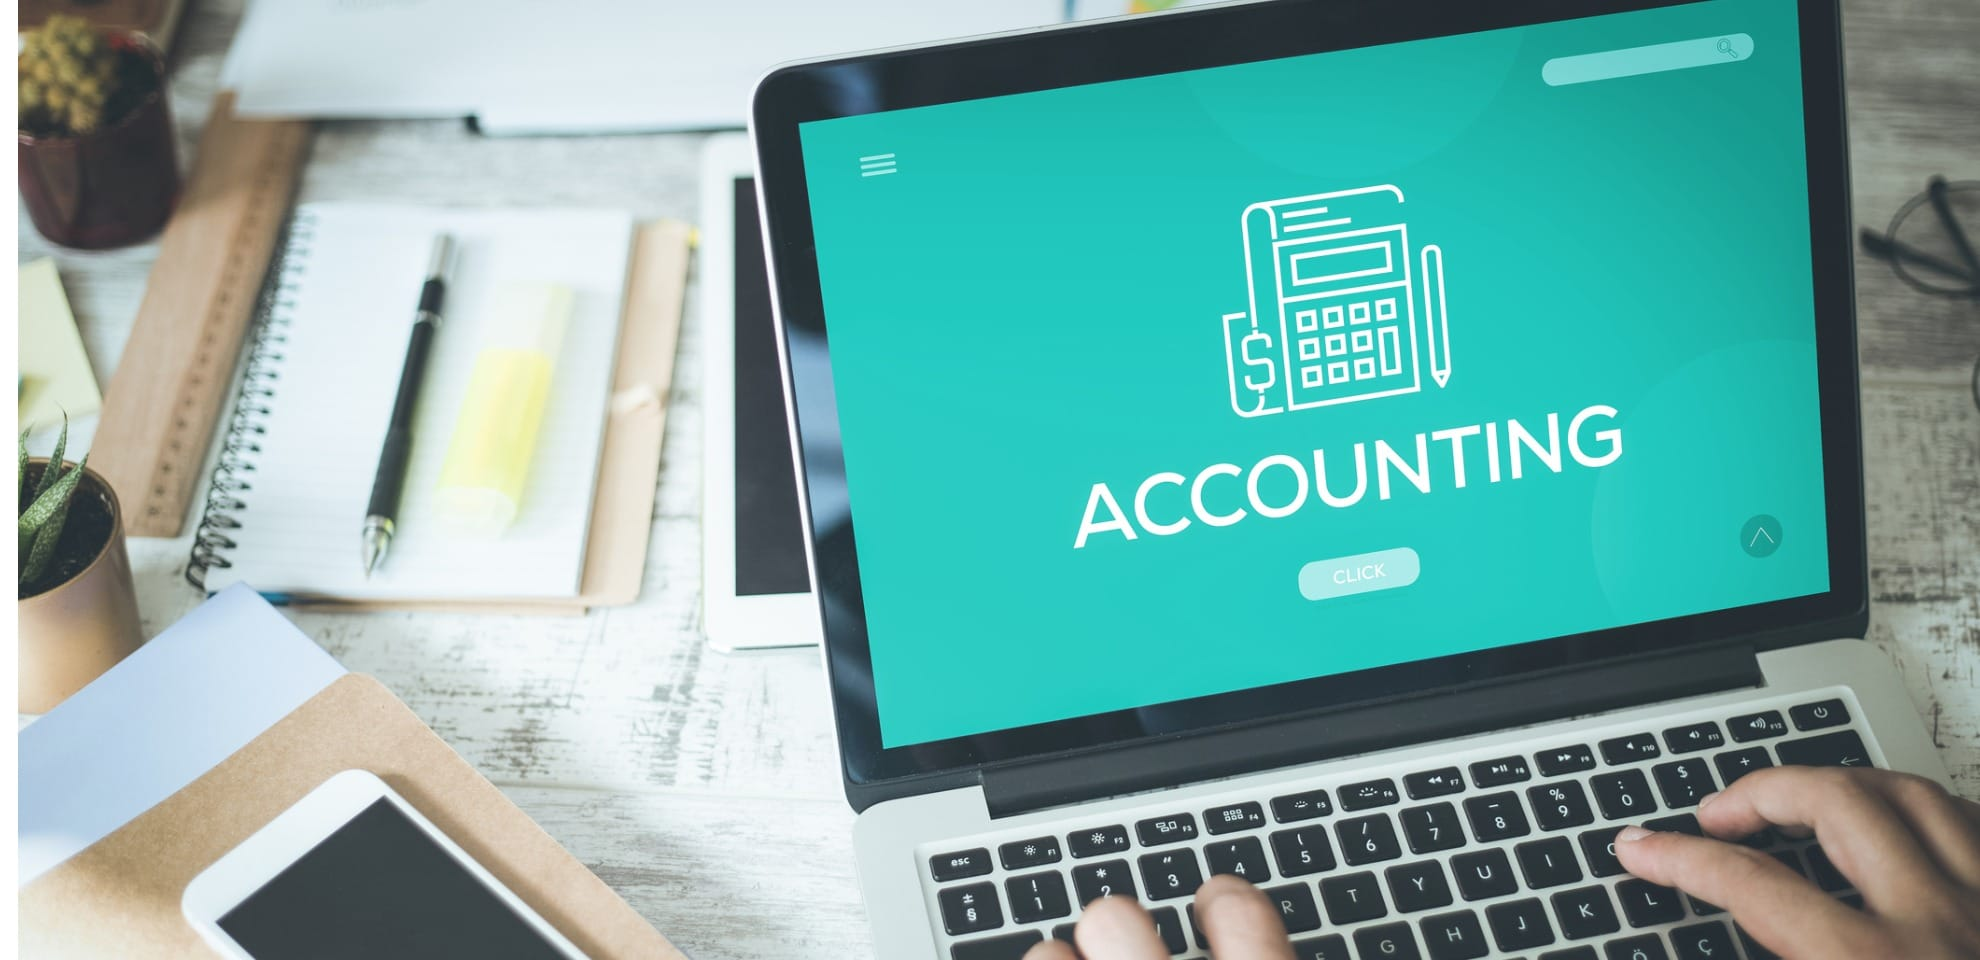 Outsourced Business Accounting Services Just Got Easier With This Guide